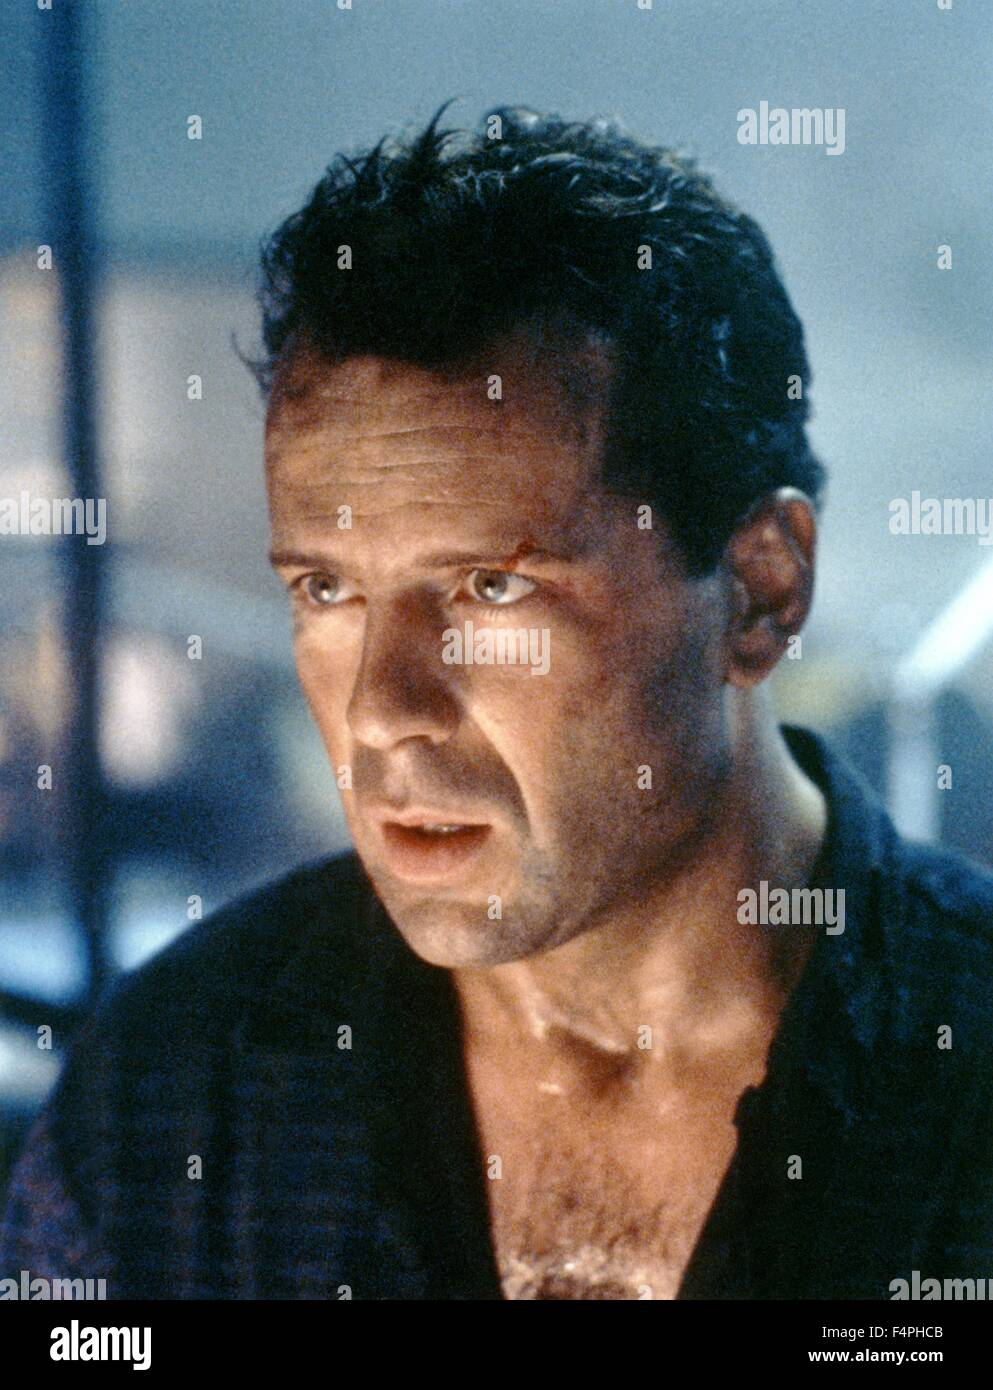 Bruce Willis / Die Hard 2 / 1990 directed by Renny Harlin [20th Century Fox] - Stock Image